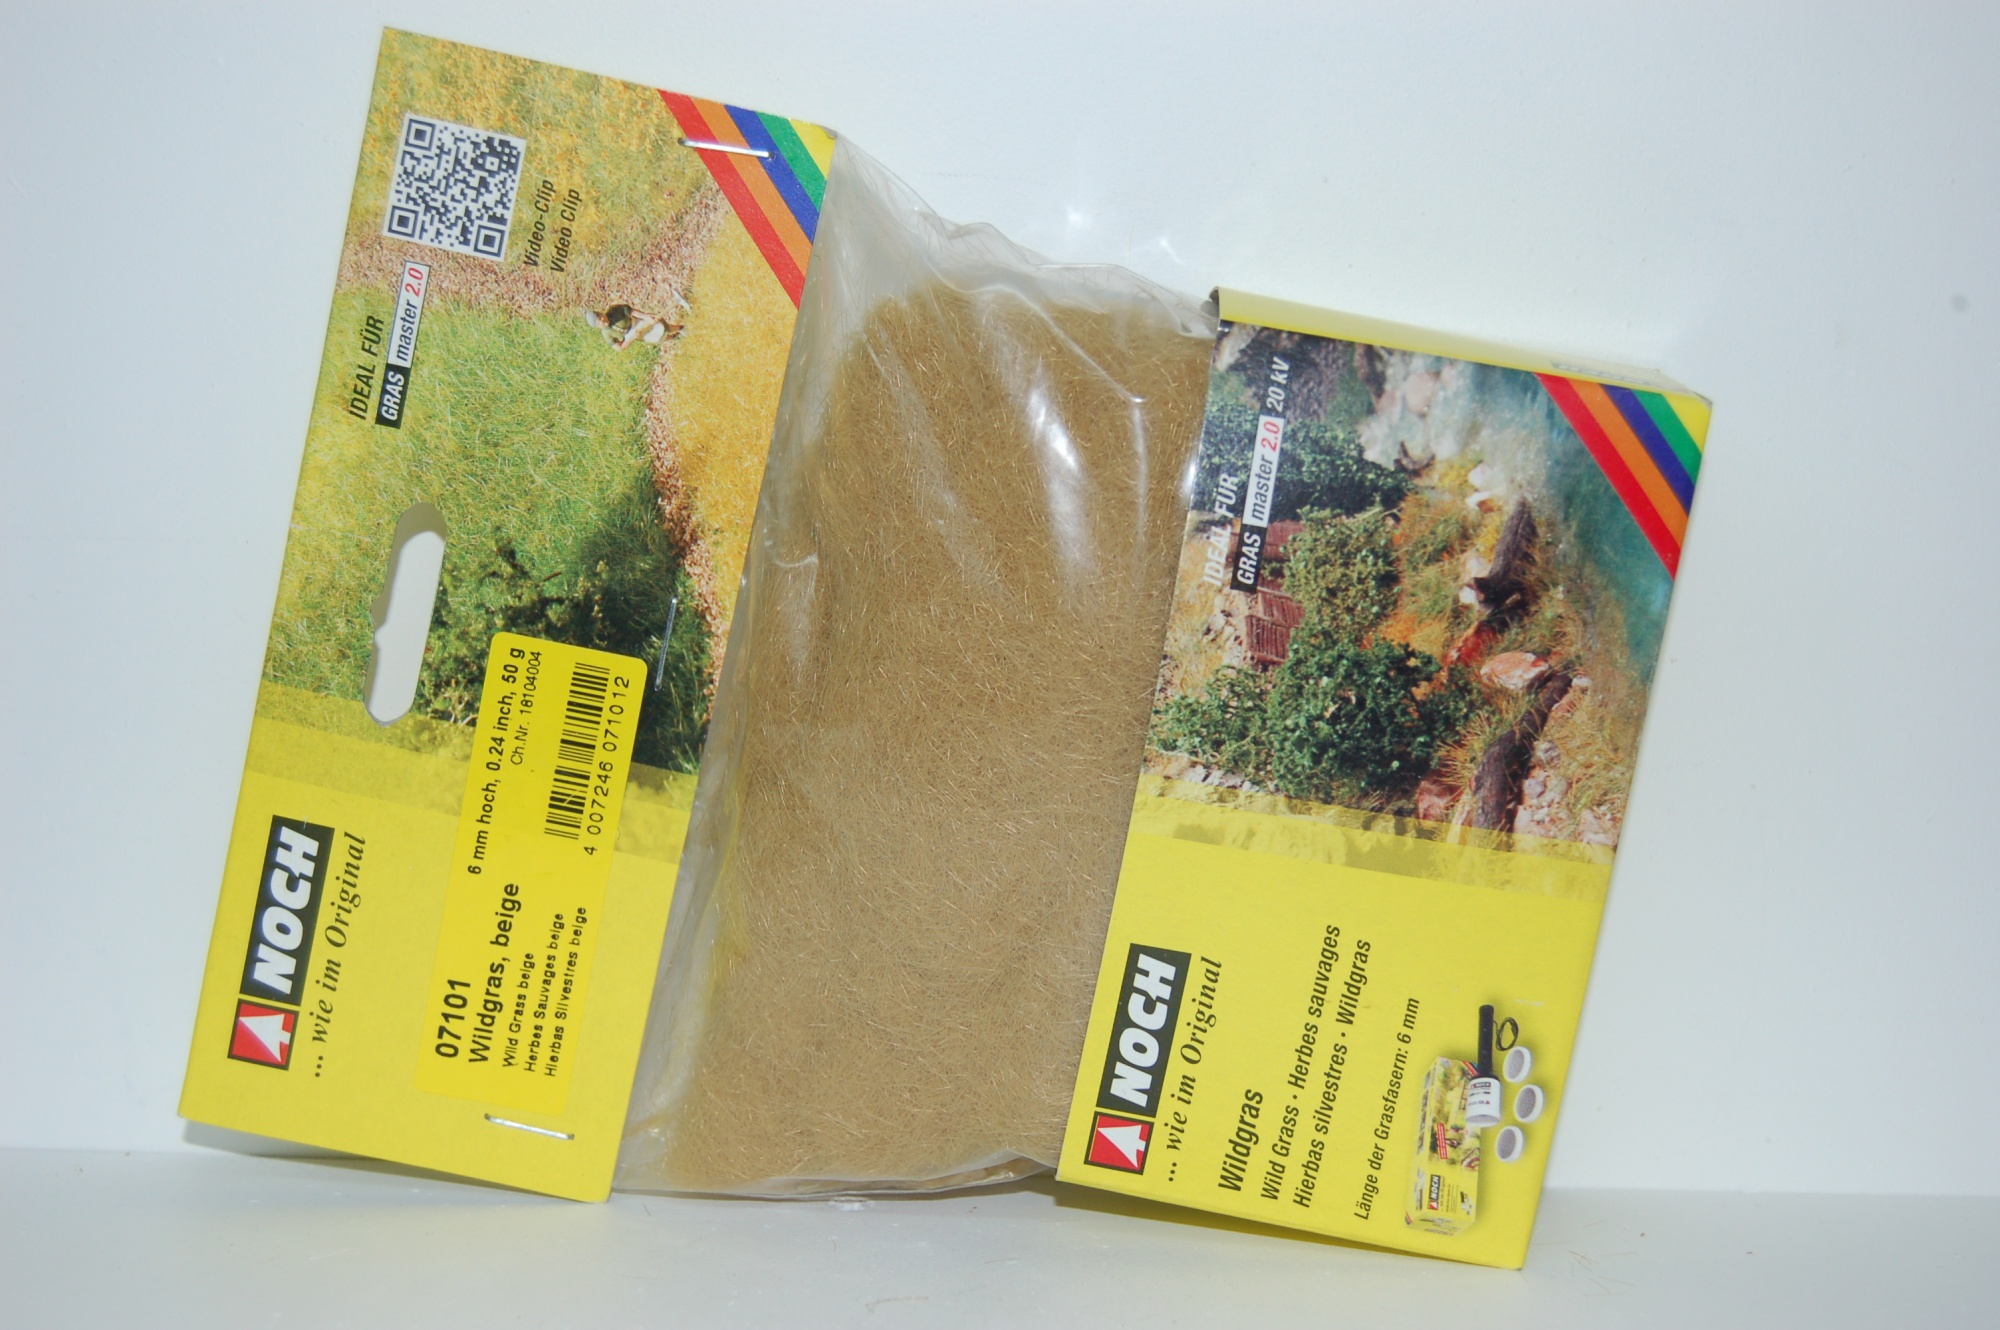 Herbes sauvages beige longueur 6 mm